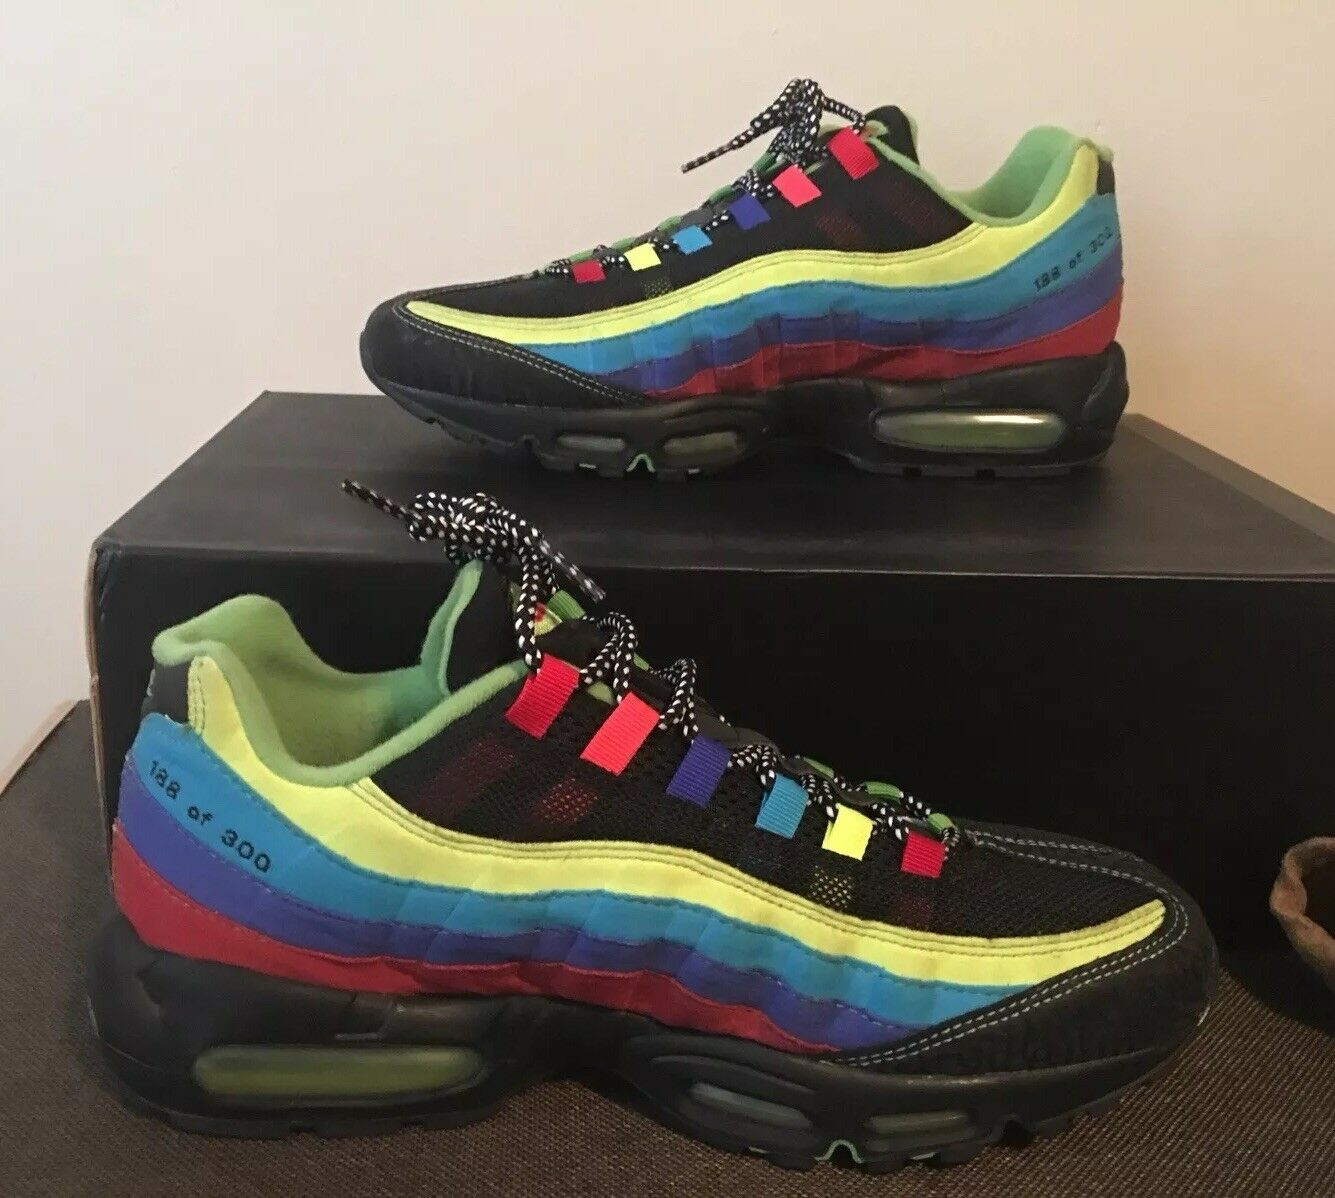 Deadstock Nike Sole Collector Air Max 95 11. Only 300 Pairs